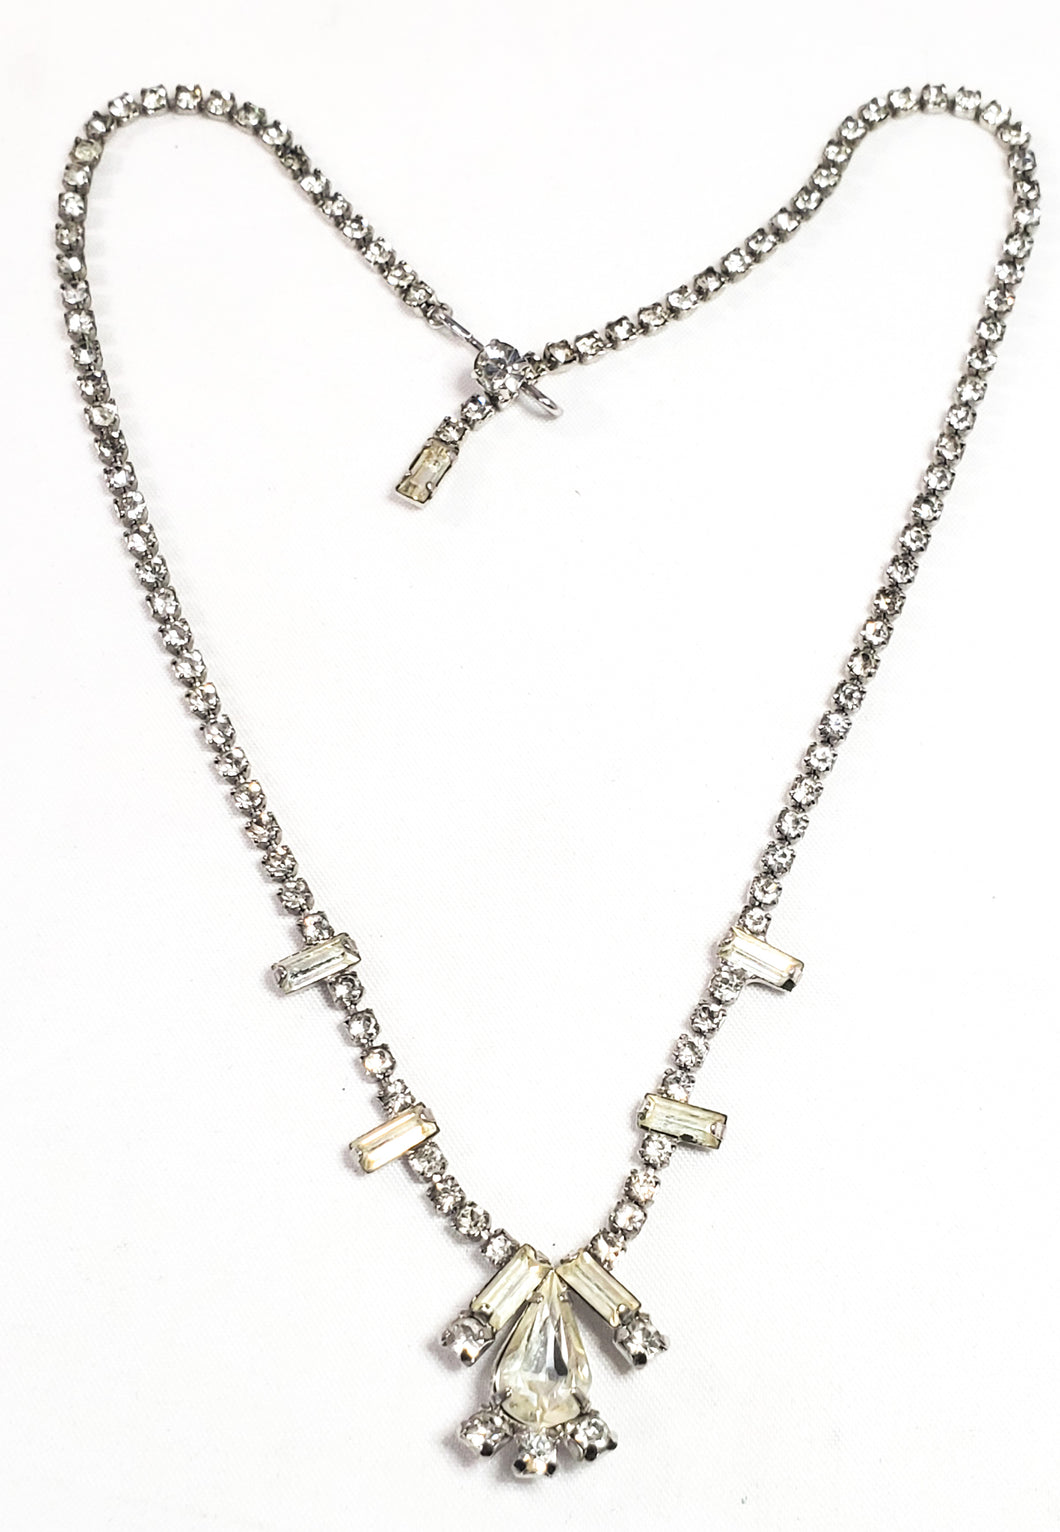 Weiss teardrop and baguette clear sparkling rhinestone necklace mid century 1950's